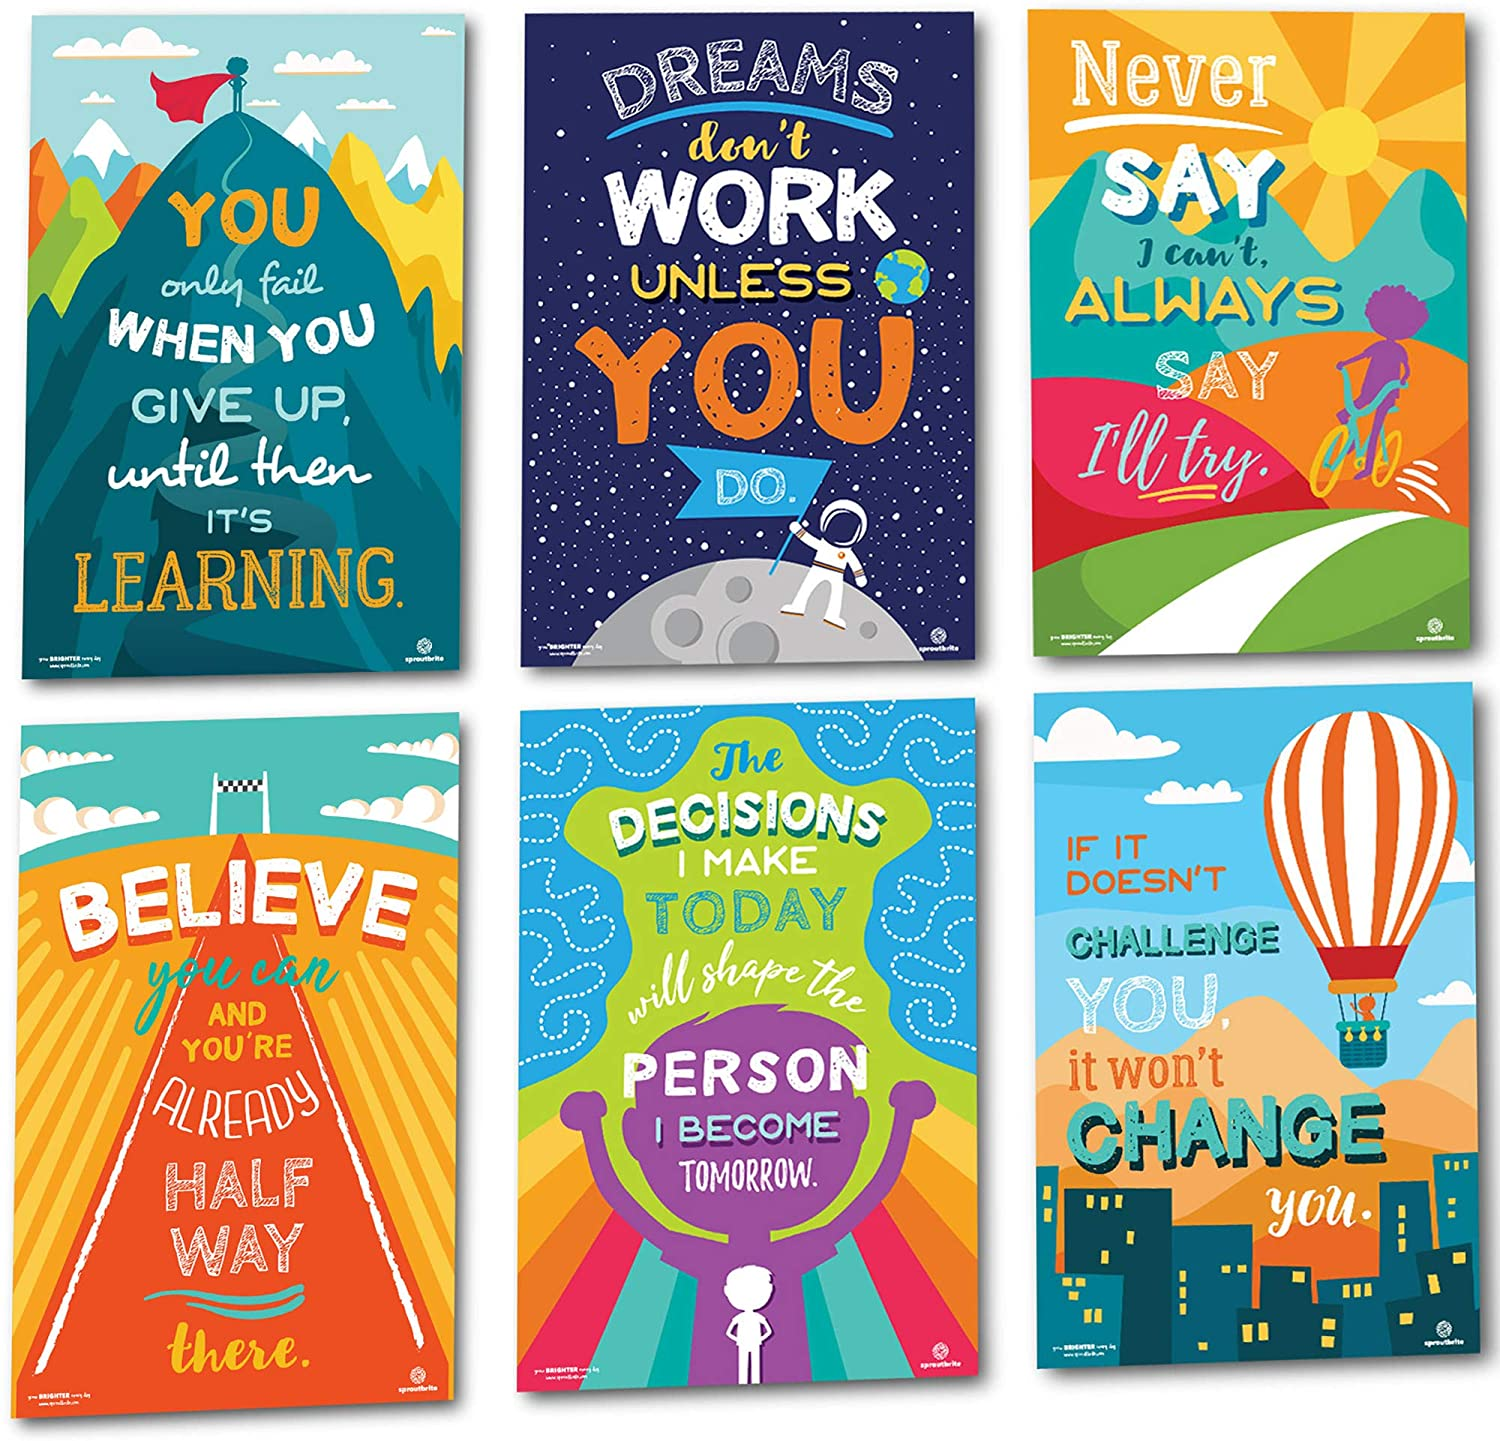 Sproutbrite Classroom Decorations - Motivational Posters - Educational and Inspirational Growth Mindset for Teacher and Students